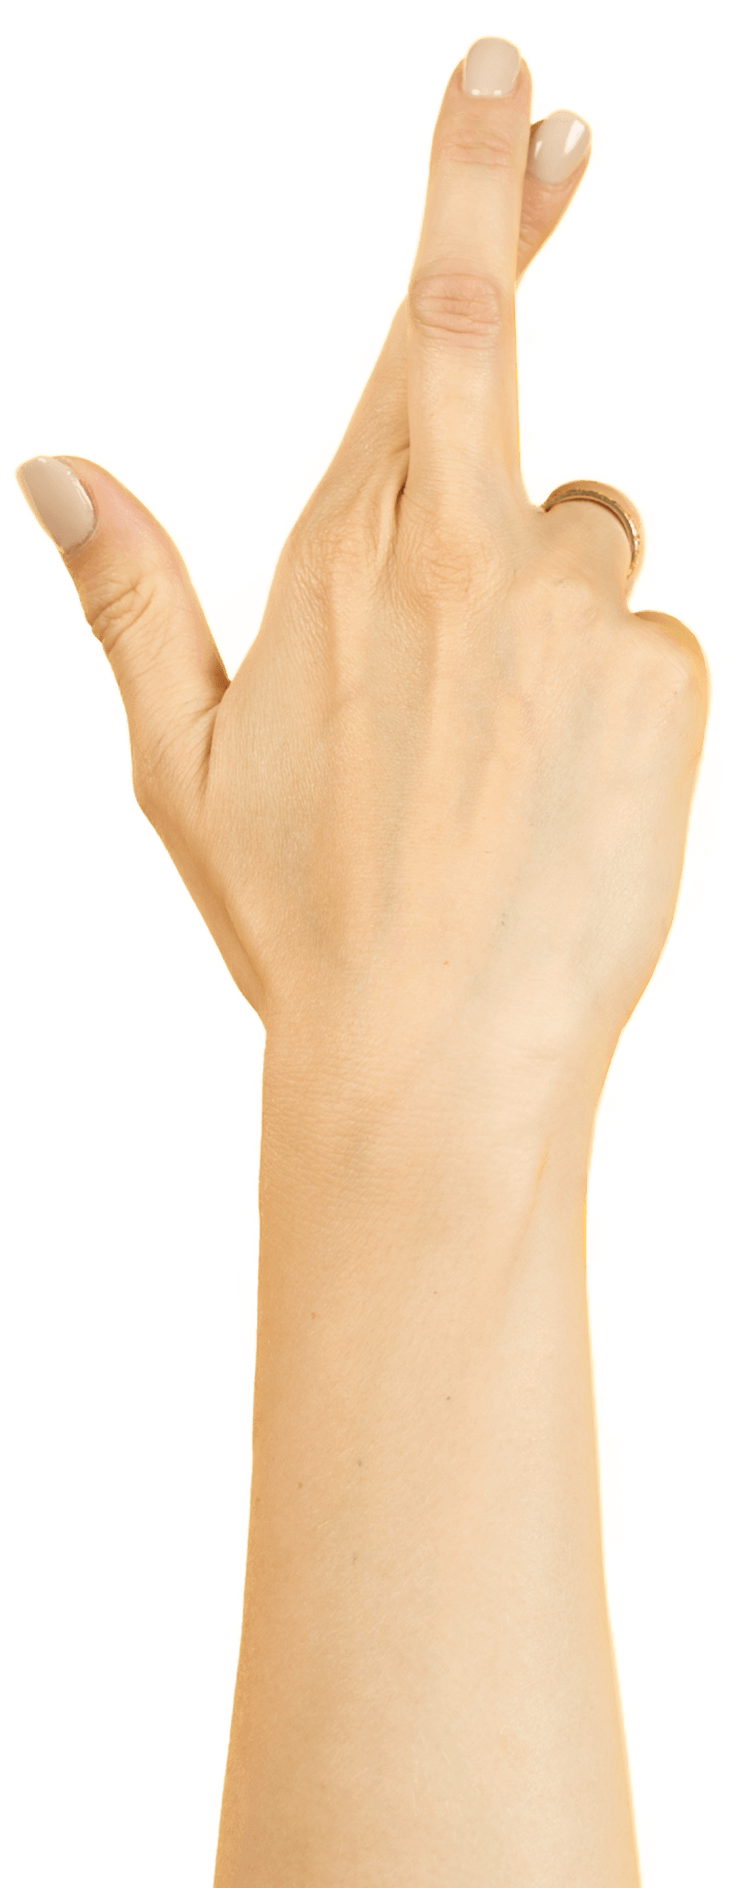 Photo of a hand with crossed fingers